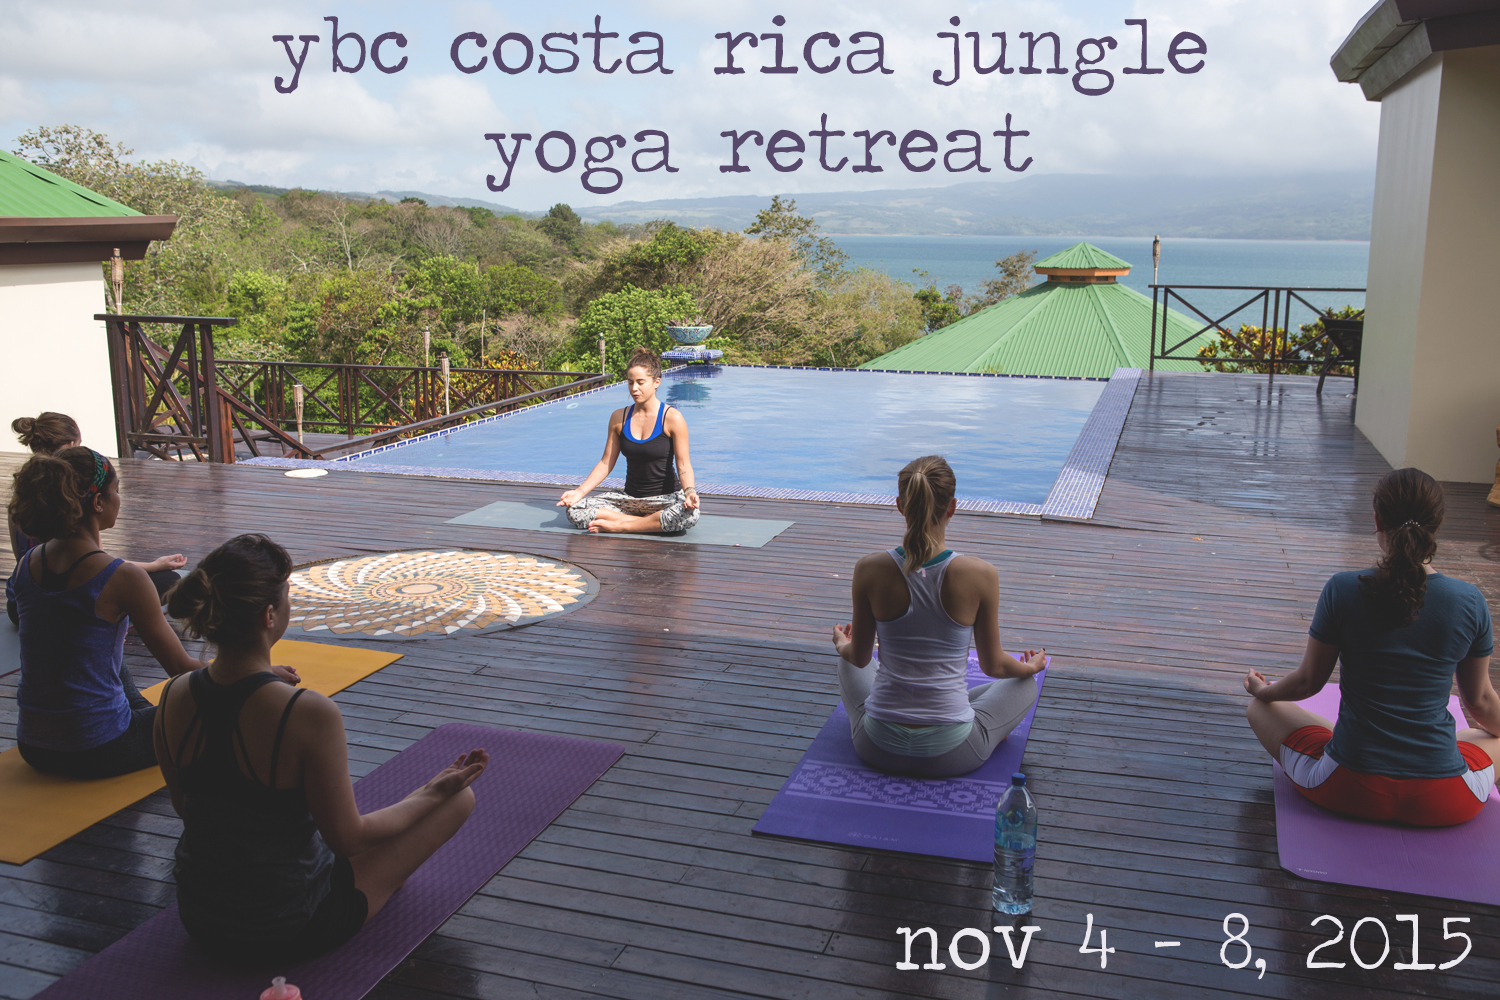 Pin now and join us for the Costa Rica jungle yoga retreat!